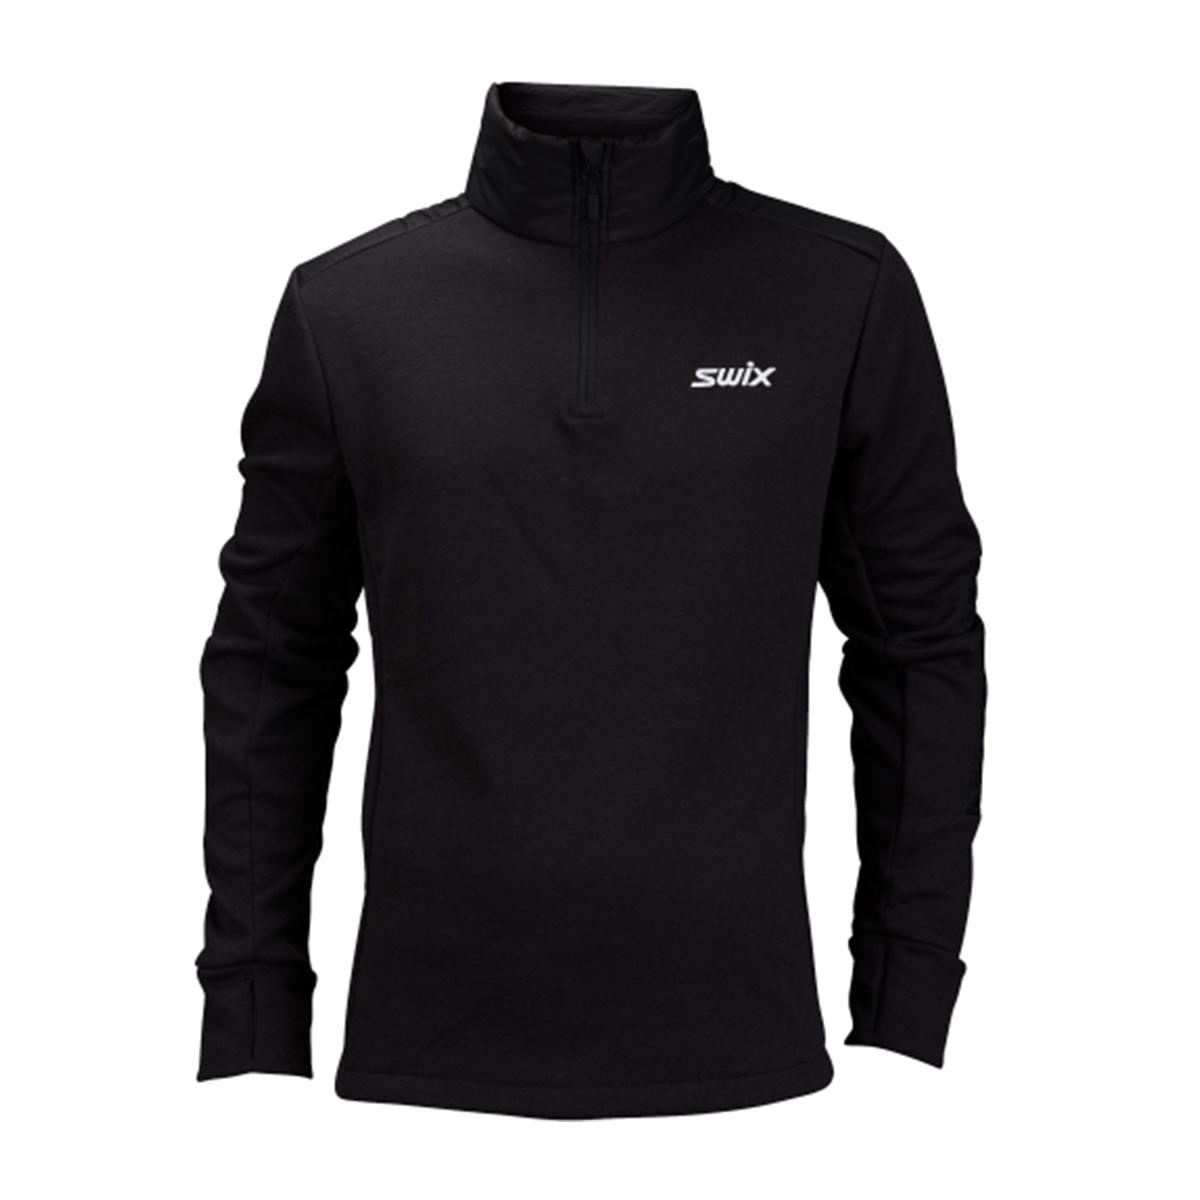 Swix Men's Blizzard 1/2 Zip Top in Black